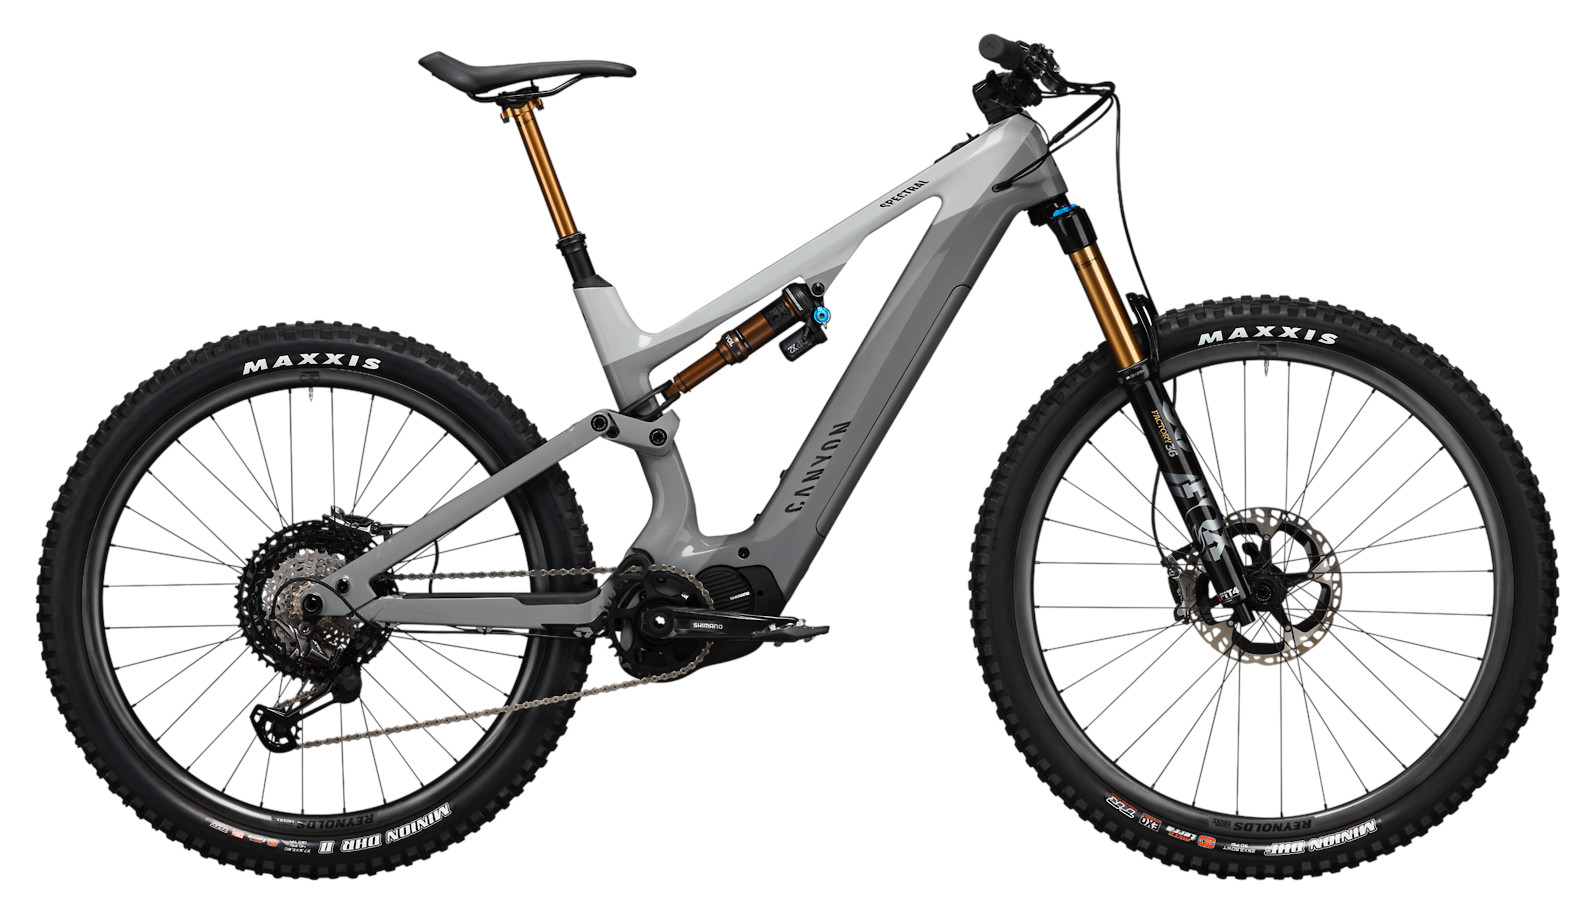 2020 Canyon Spectral/ON CF 9.0